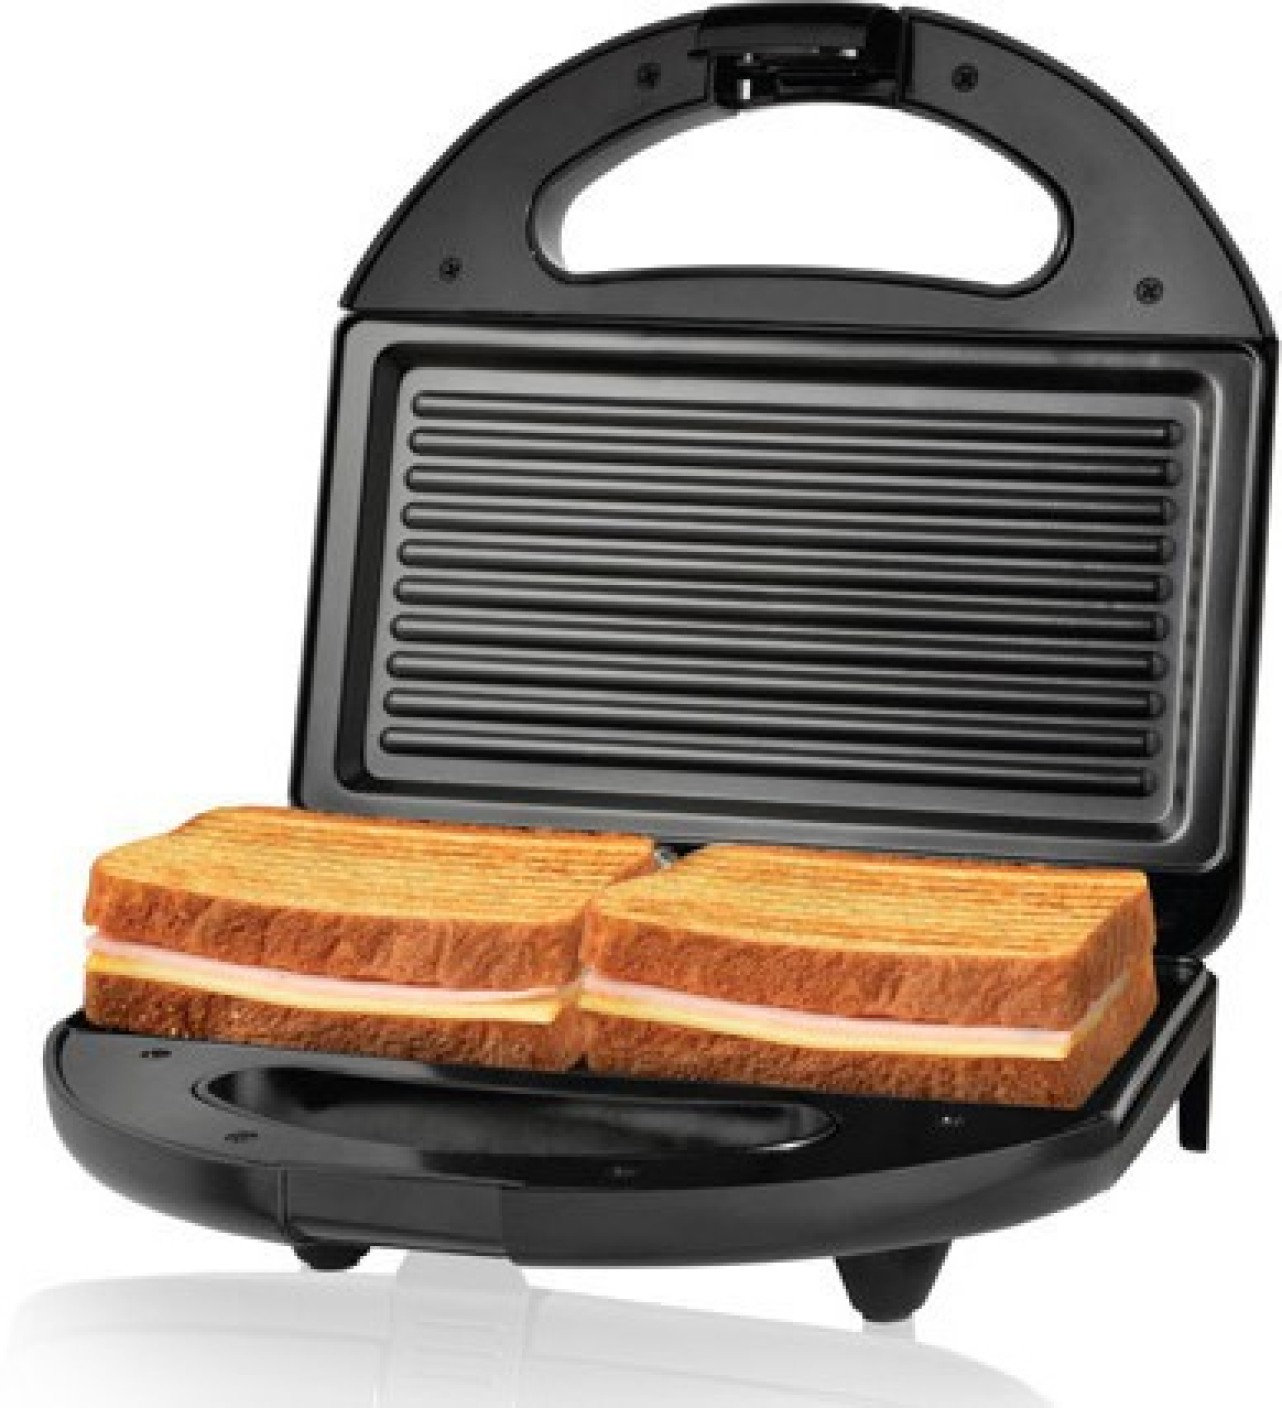 nova grill sandwich maker nsg 2440 grill toast price in. Black Bedroom Furniture Sets. Home Design Ideas